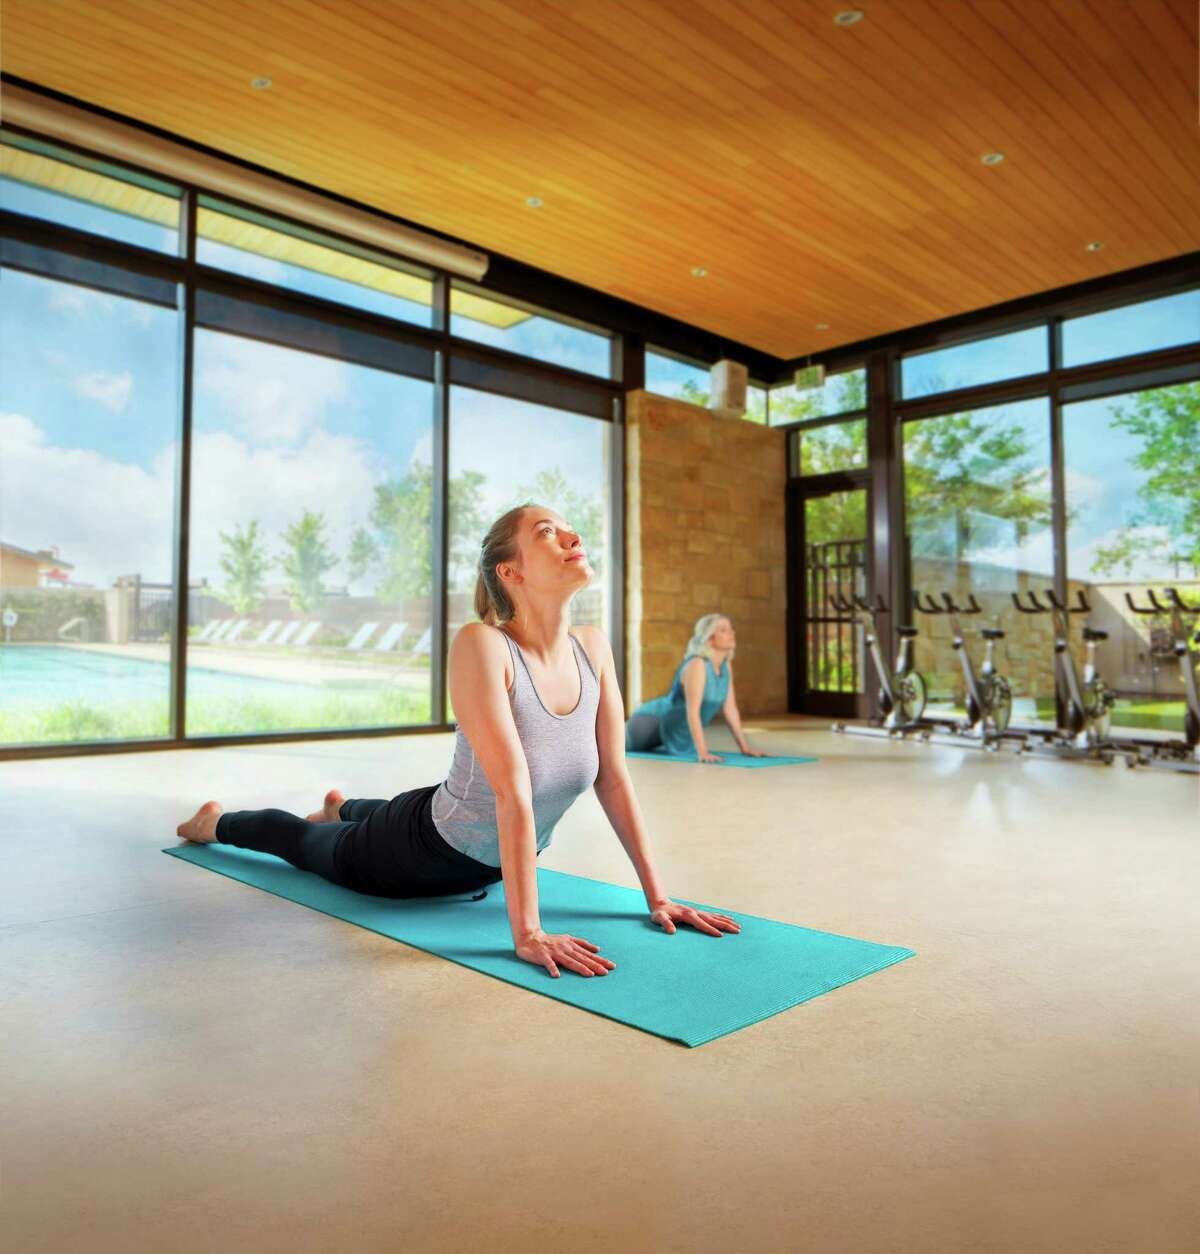 Cane Quarter's resort-quality features includes a tranquil yoga studio with on-demand classes suitable for all levels.